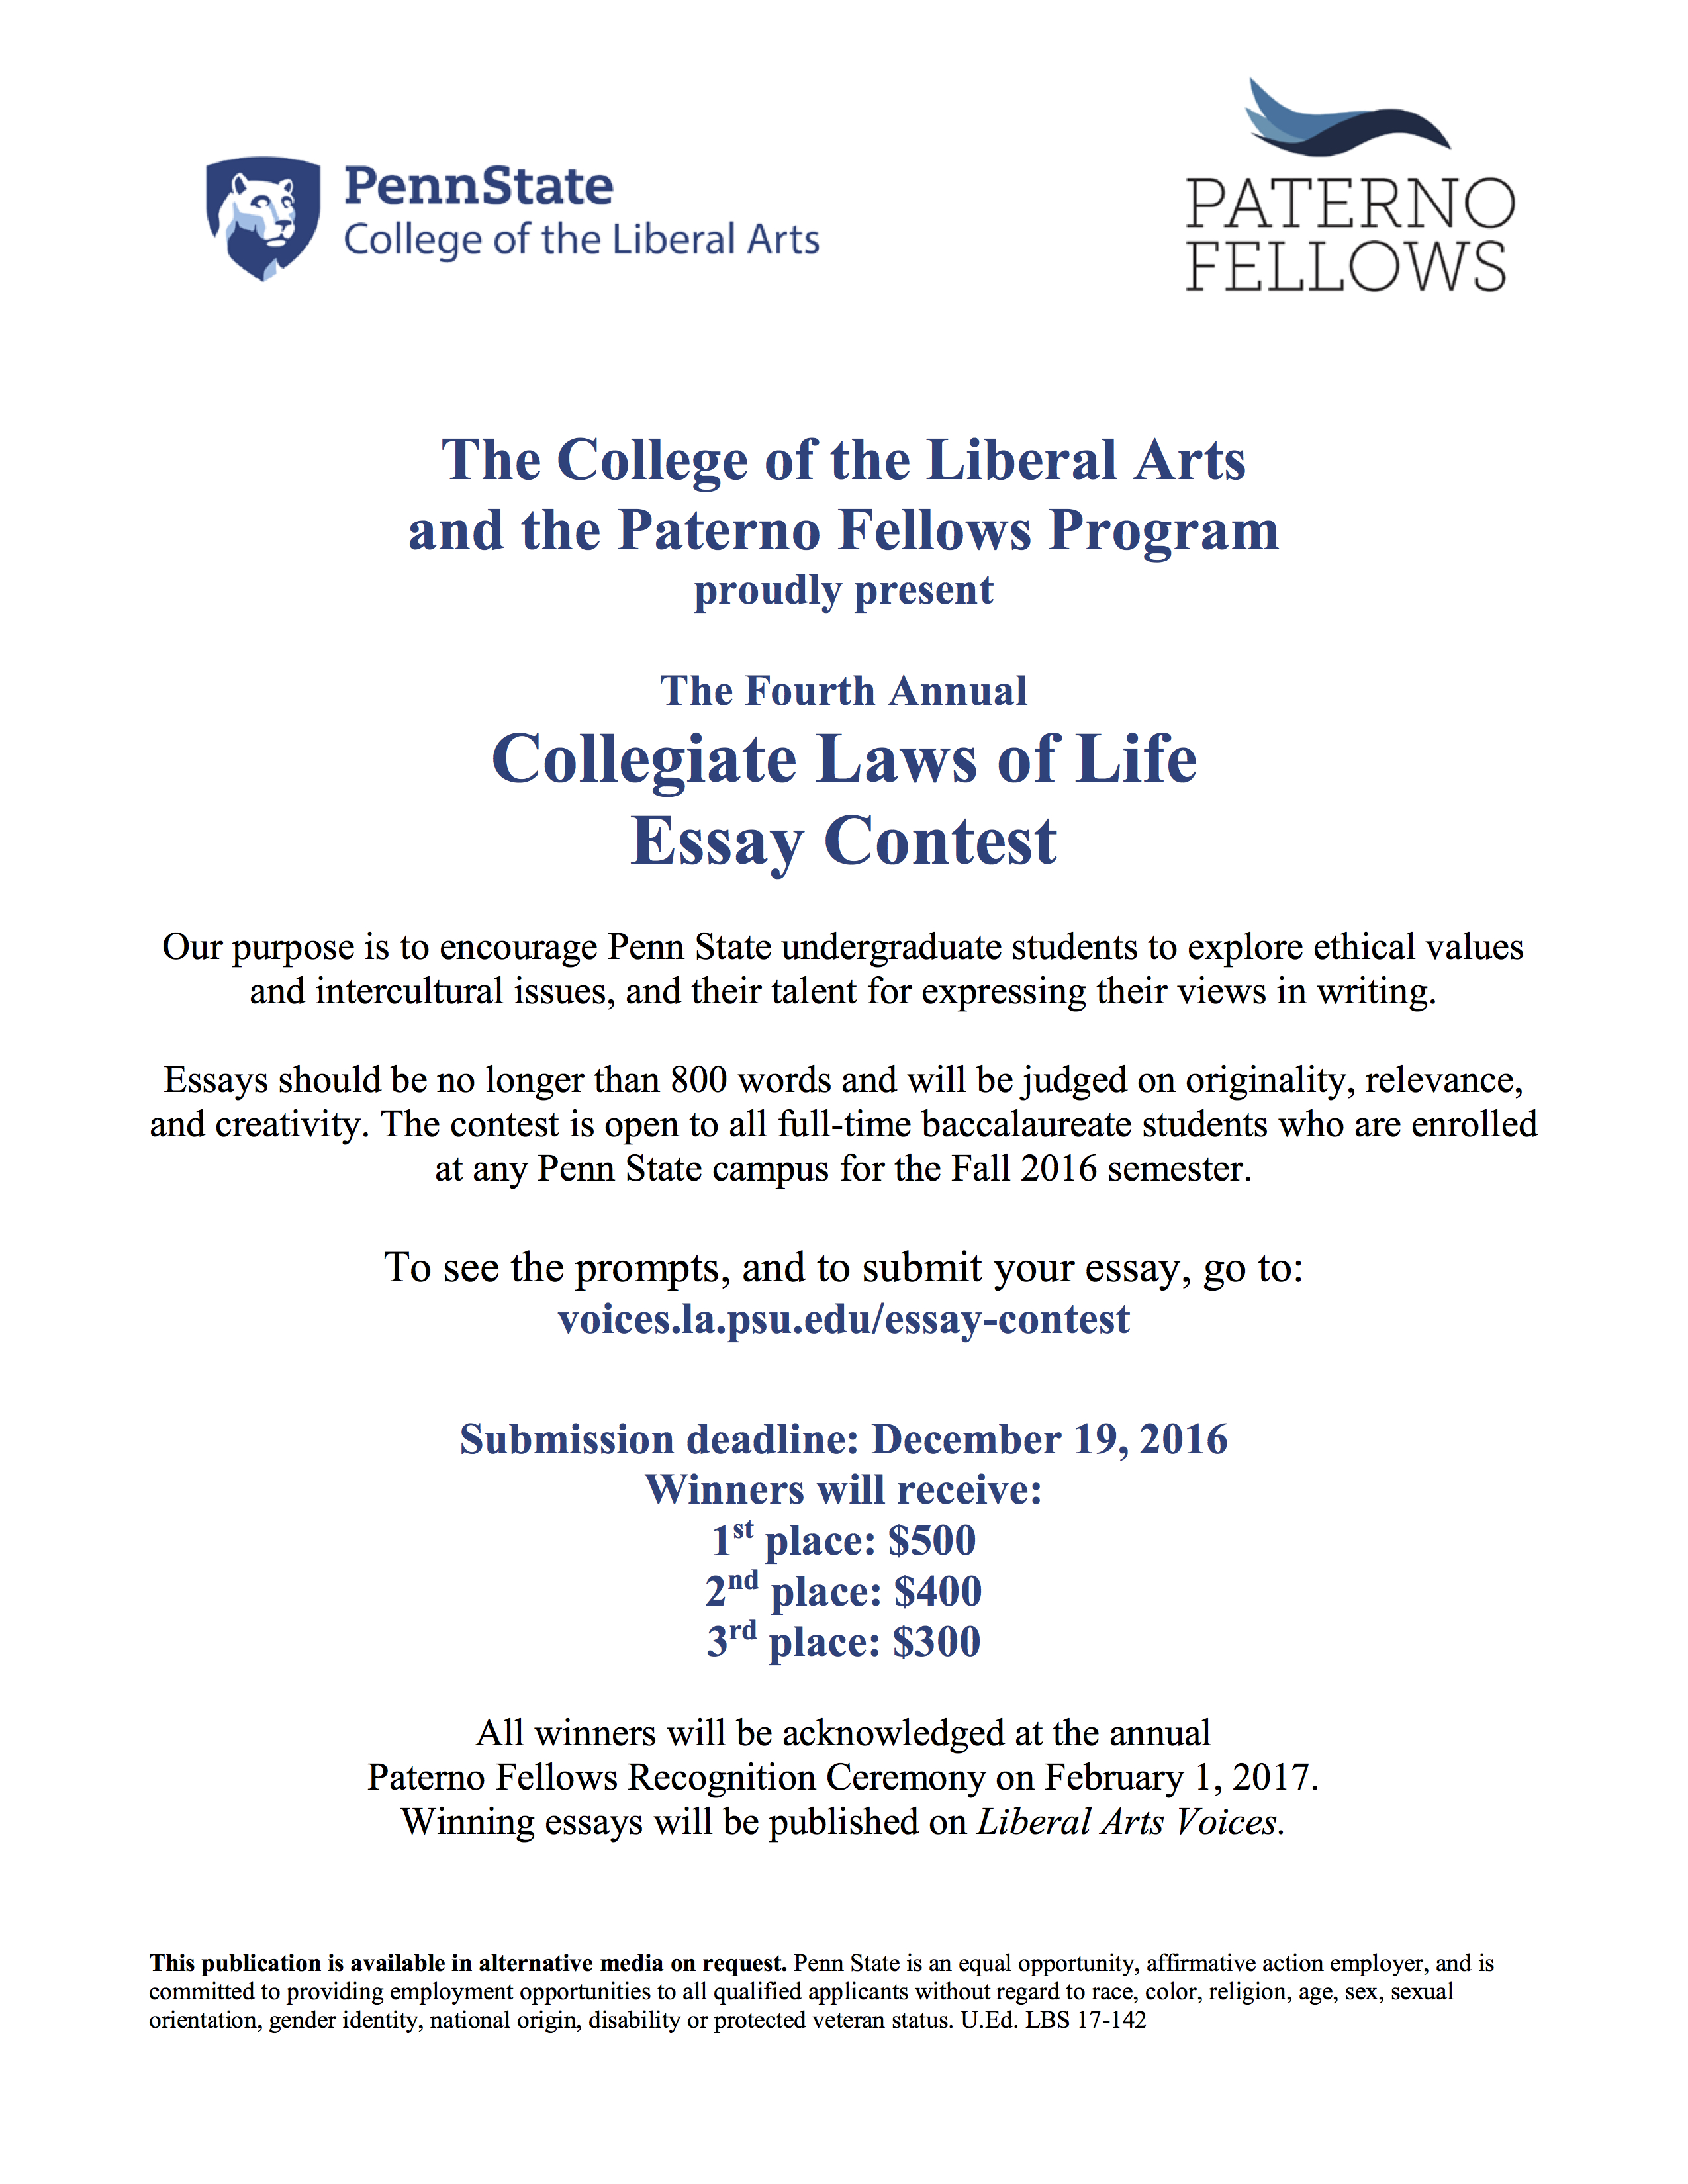 Paterno Fellows Collegiate Laws Of Life Essay Contest Collegiatelawsoflifeessaycontest